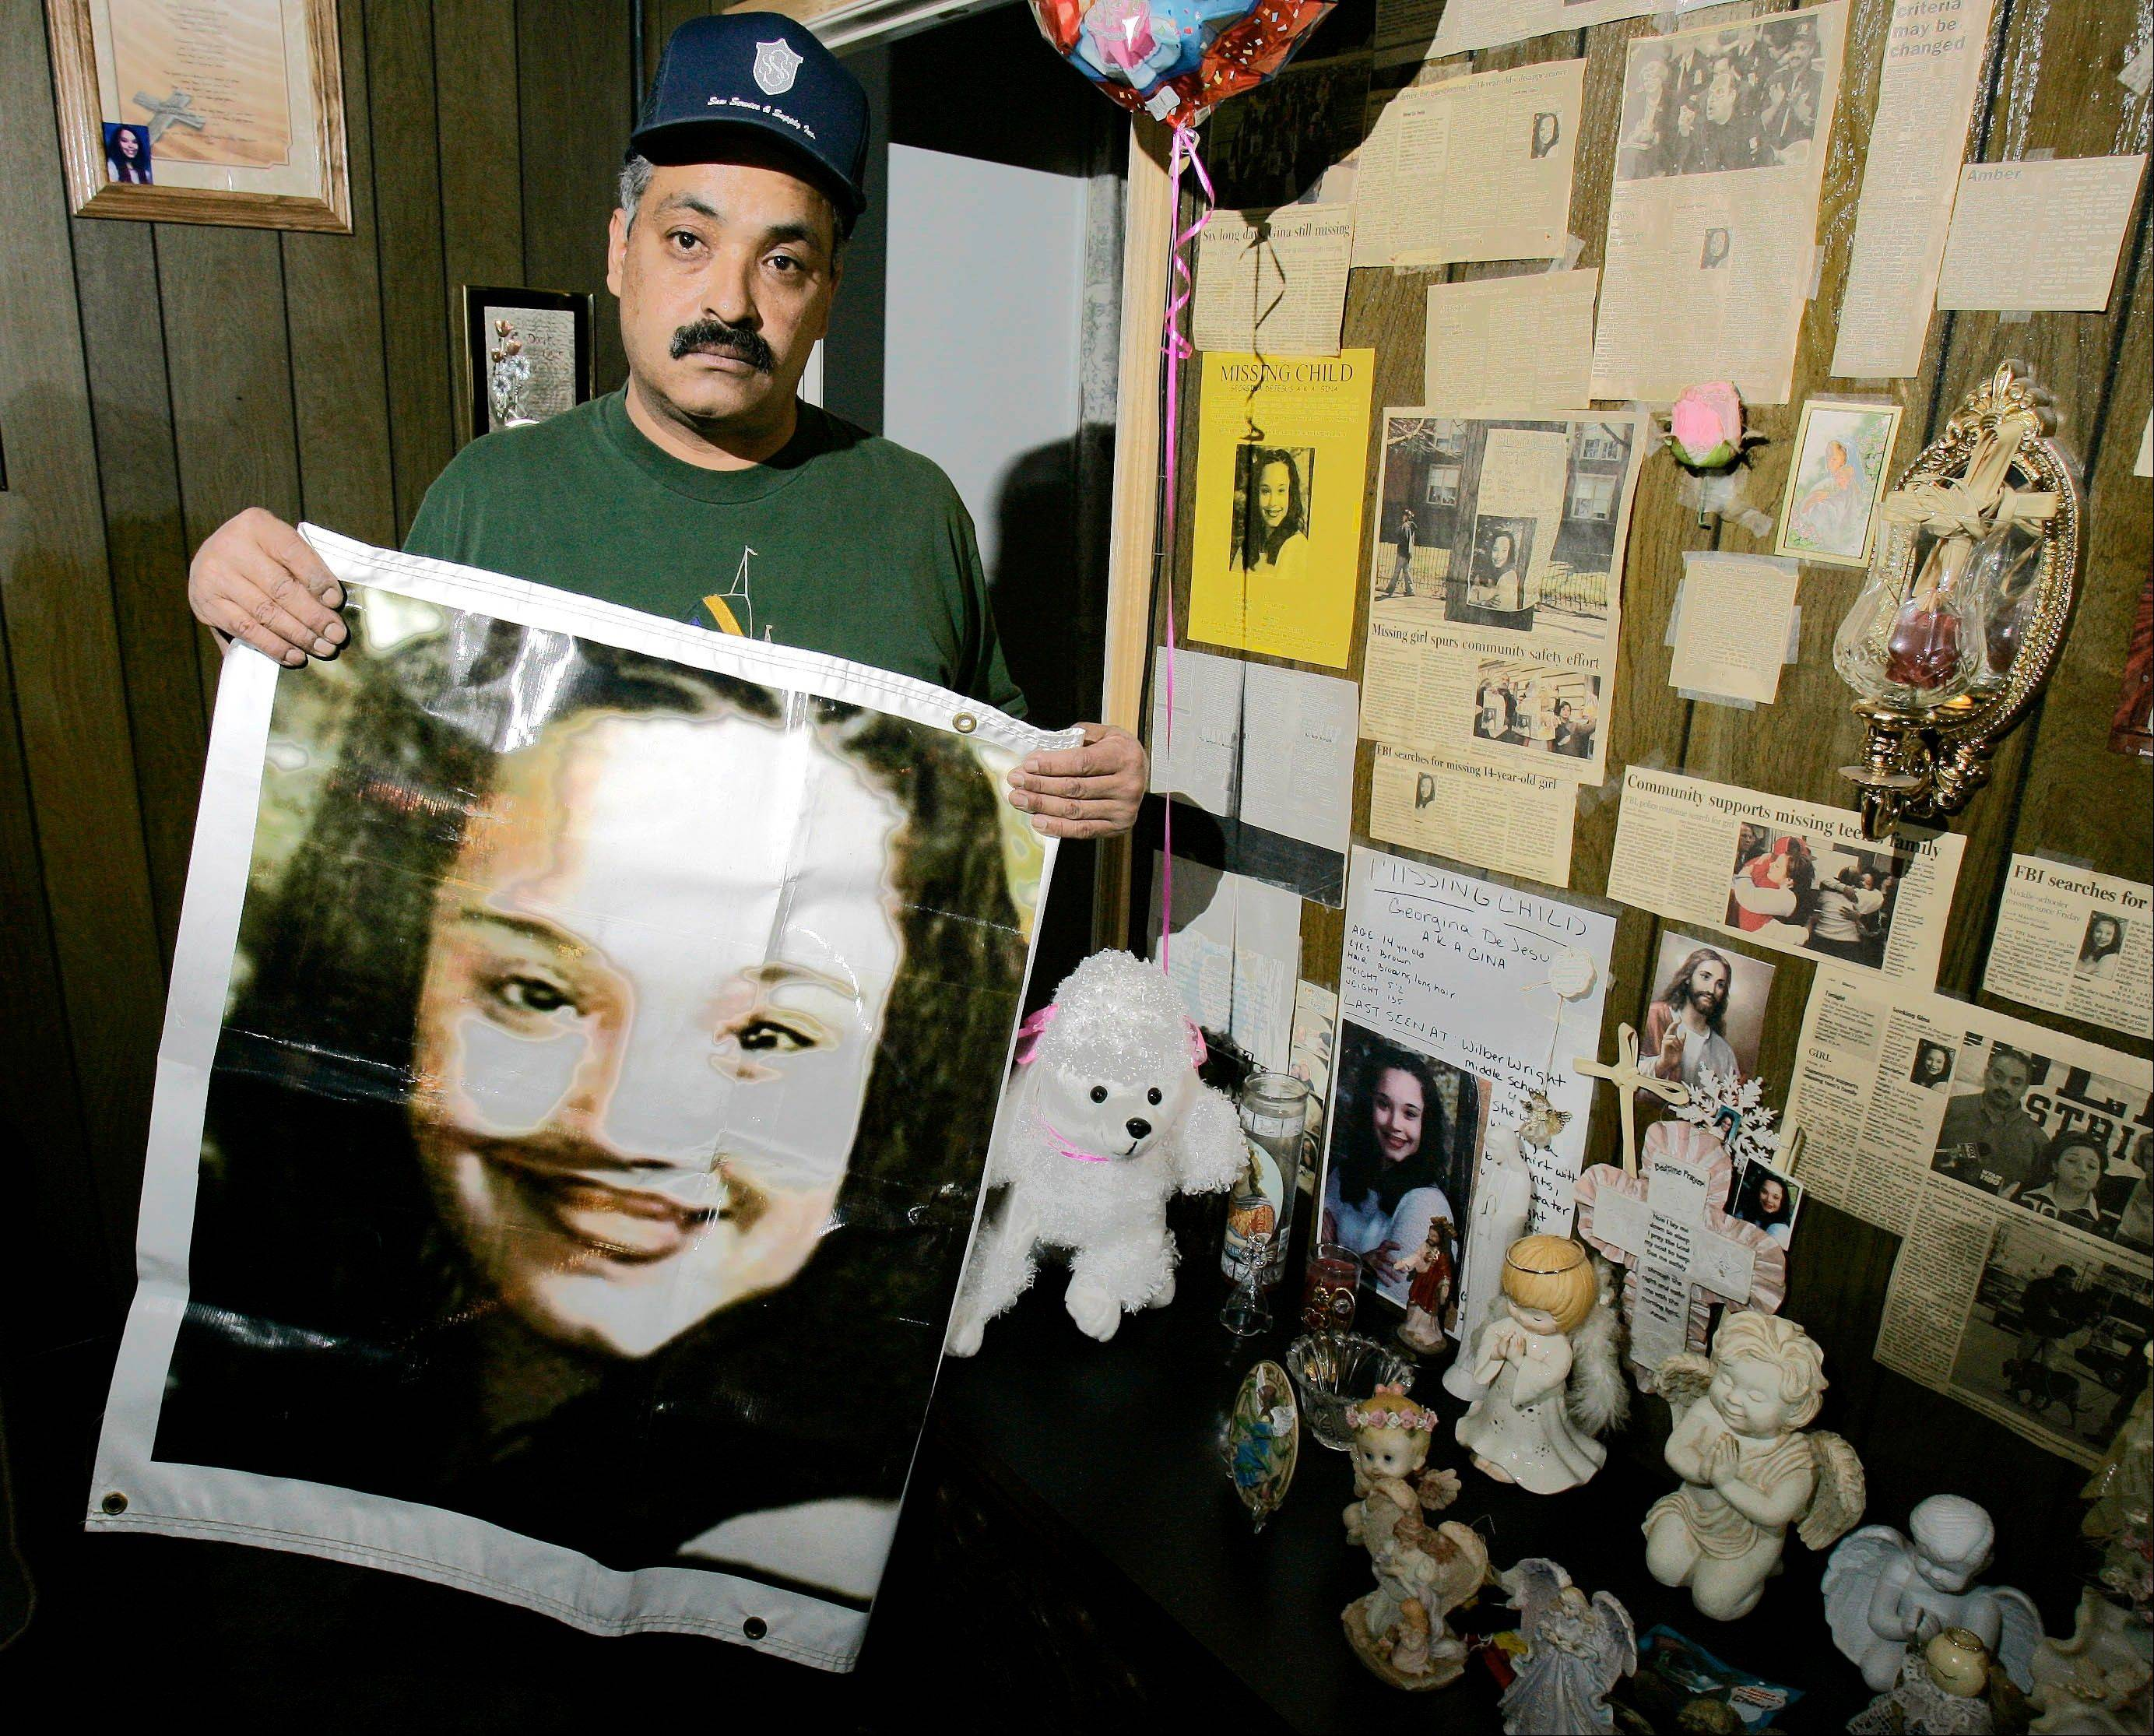 This Friday, March 3, 2004, file photo shows Felix DeJesus holding a banner showing his daughter's photograph and standing by a memorial in his living room in Cleveland. Cleveland police say Gina DeJesus and Amanda Berry, who went missing as teenagers about a decade ago, have been found alive in a residential area about two miles south of downtown.